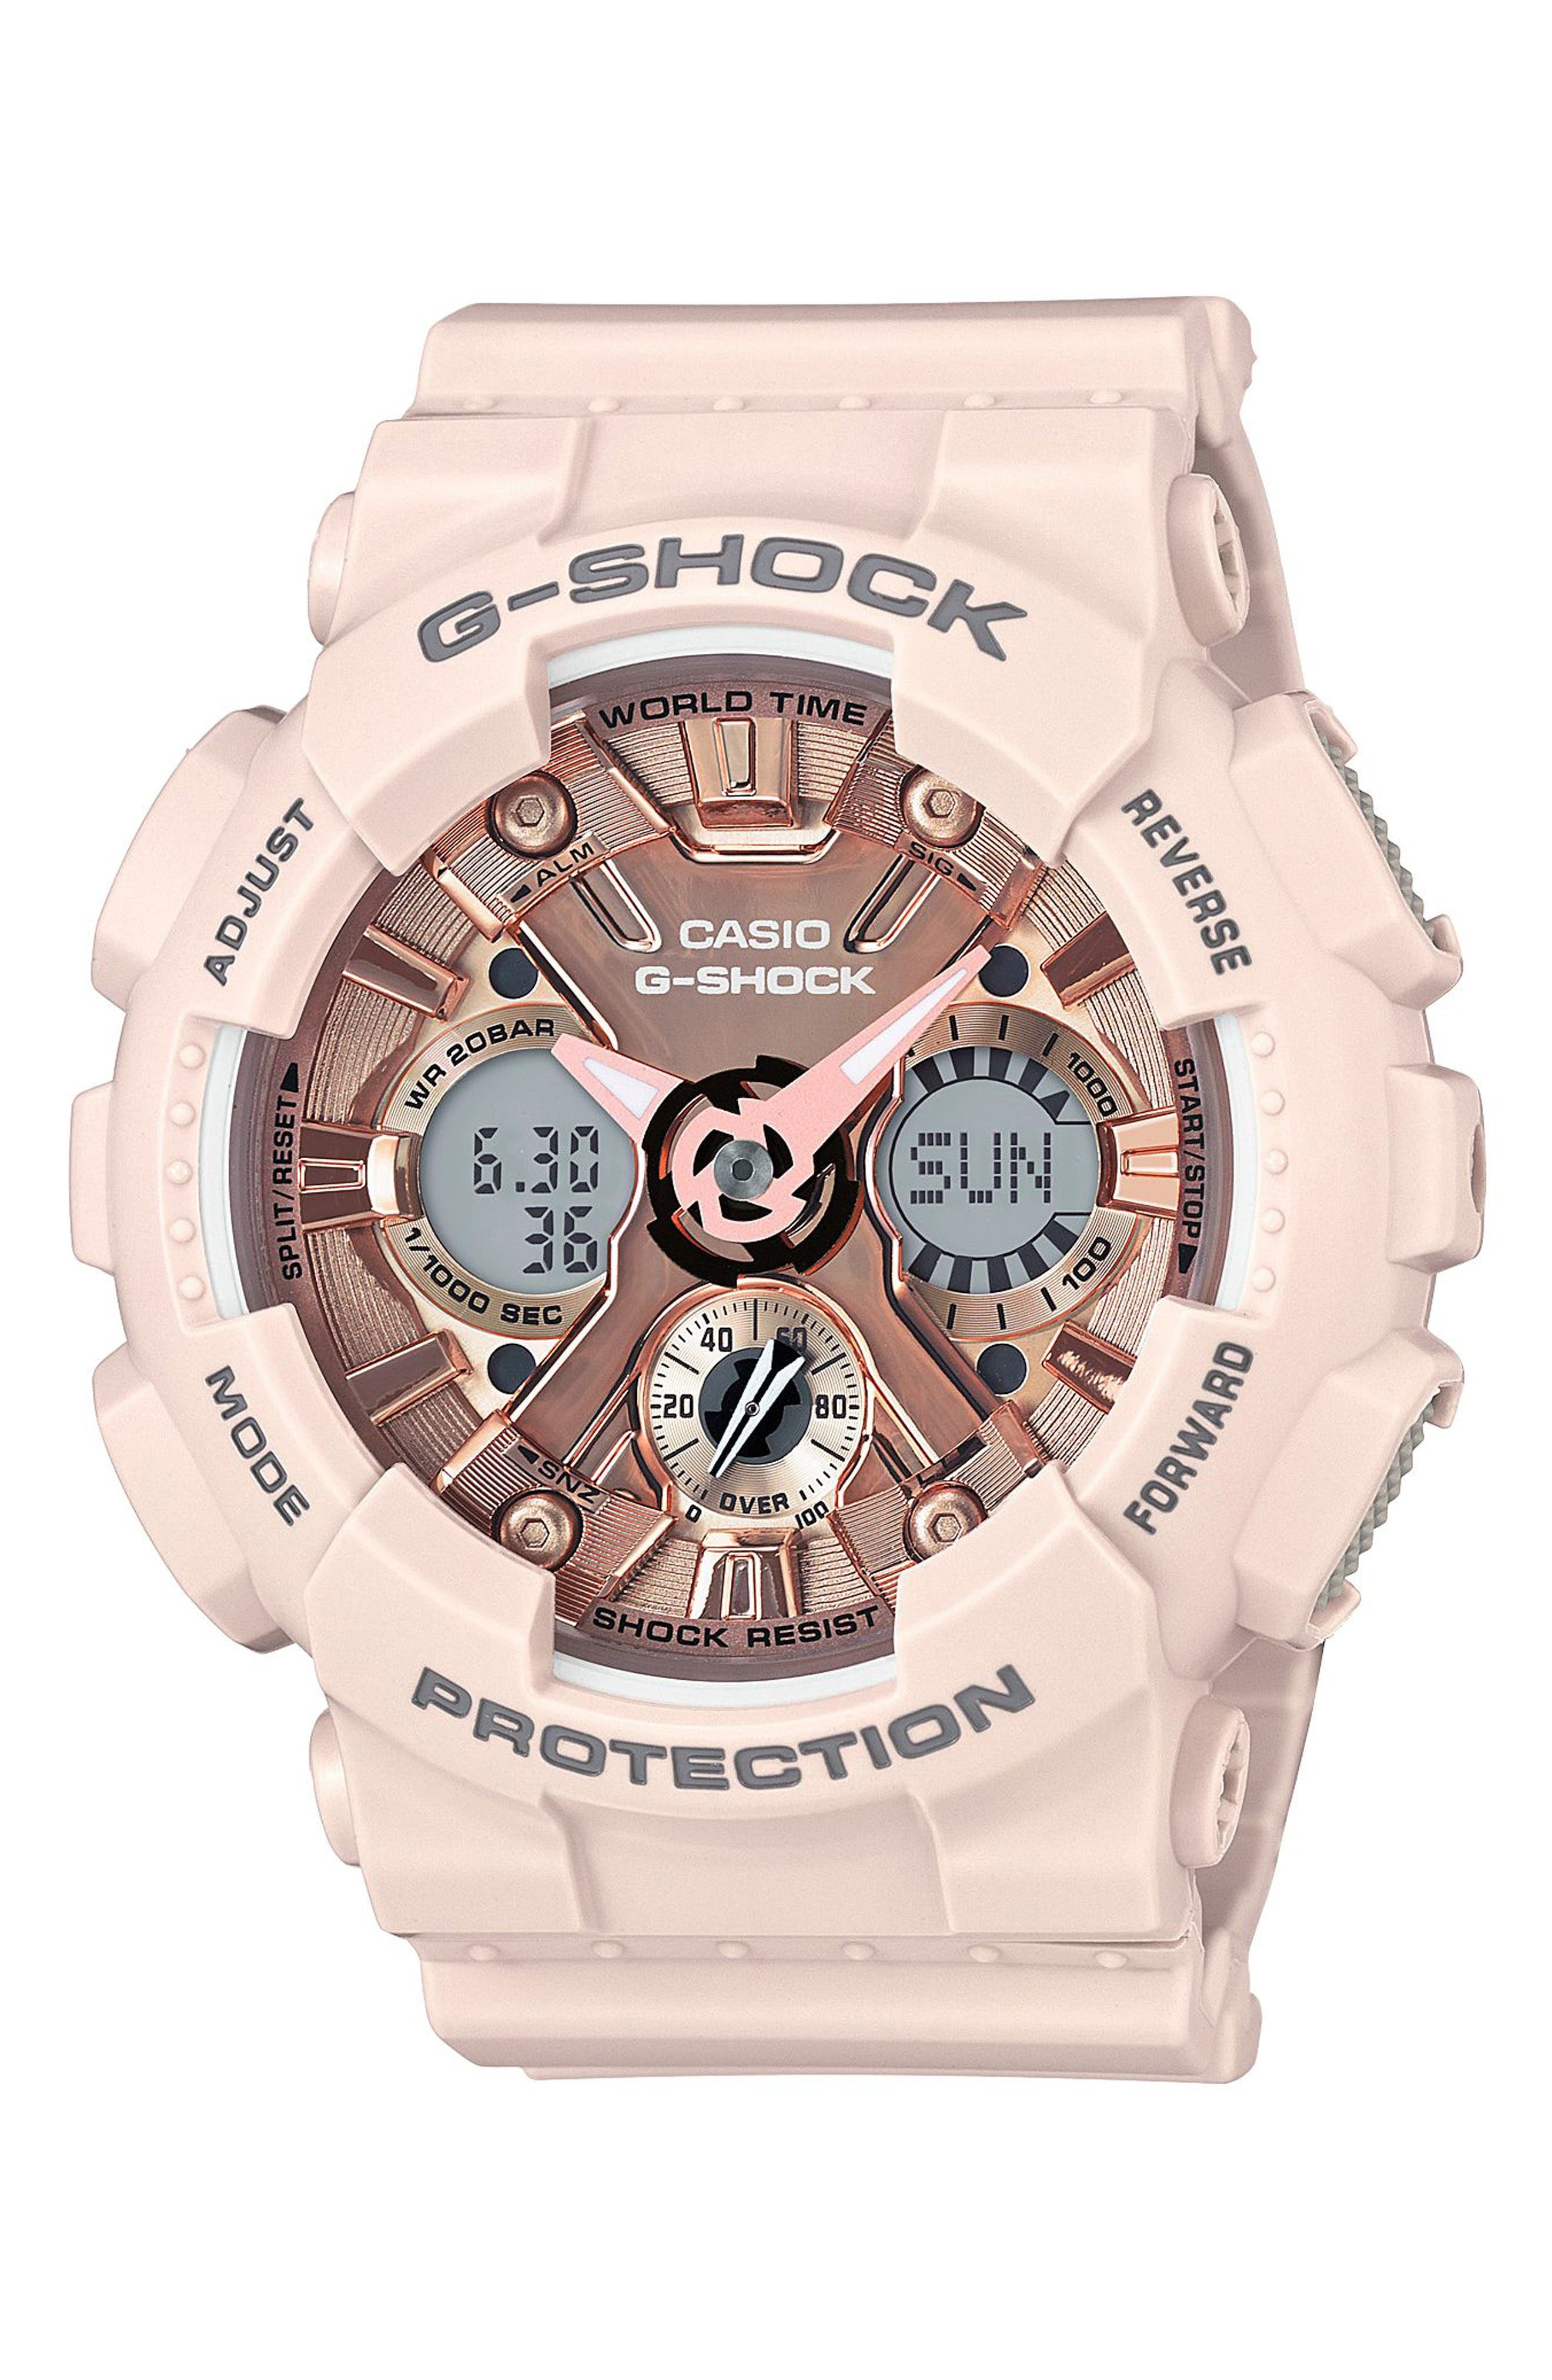 G-SHOCK BABY-G G-Shock S-Series Ana-Digi Watch, 49mm